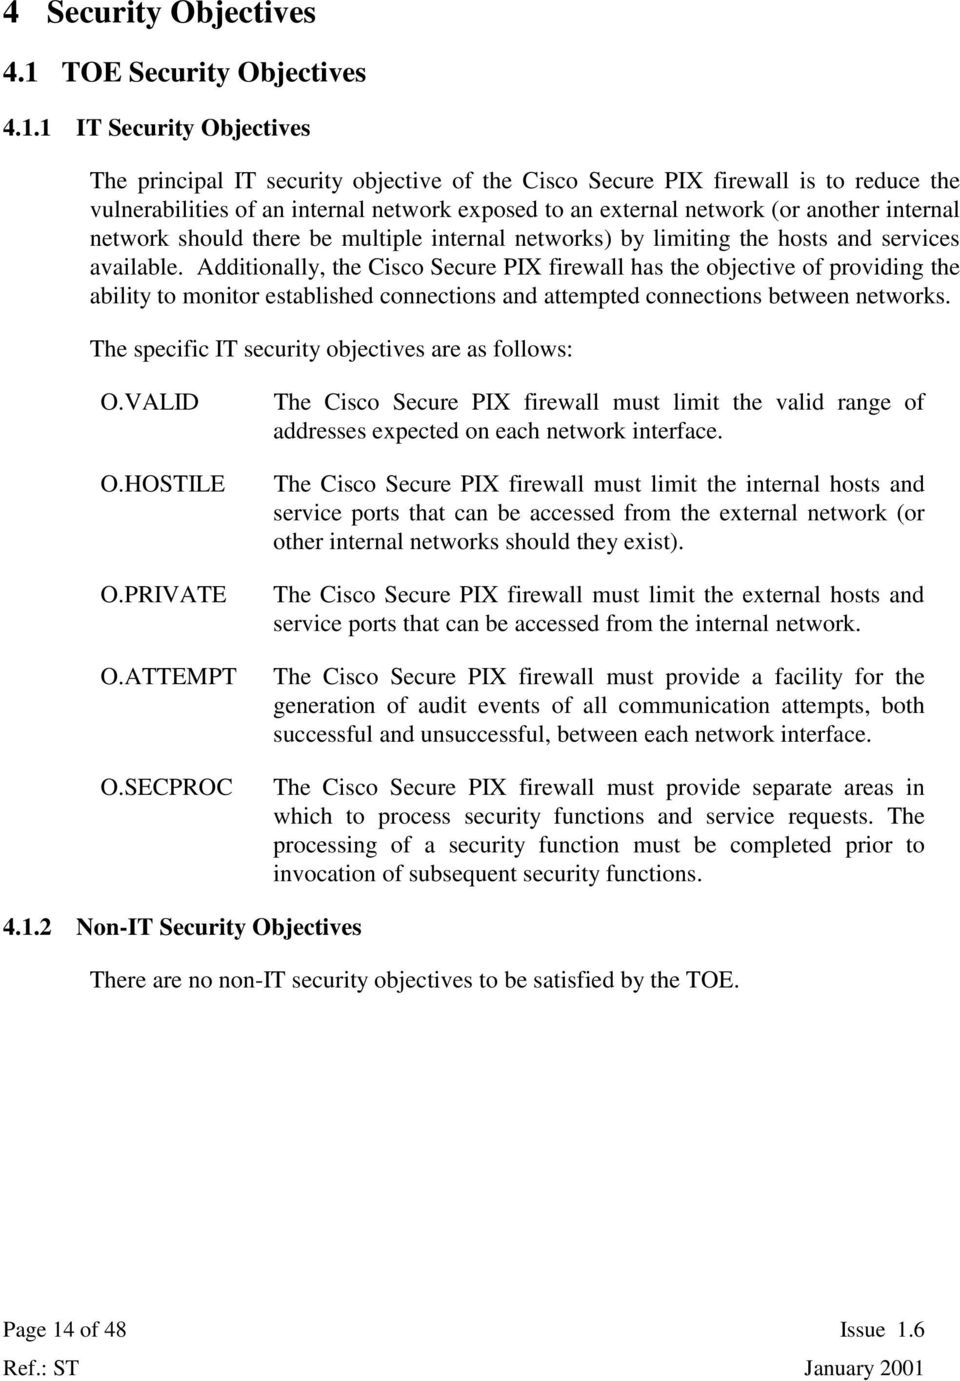 1 IT Security Objectives The principal IT security objective of the Cisco Secure PIX firewall is to reduce the vulnerabilities of an internal network exposed to an external network (or another